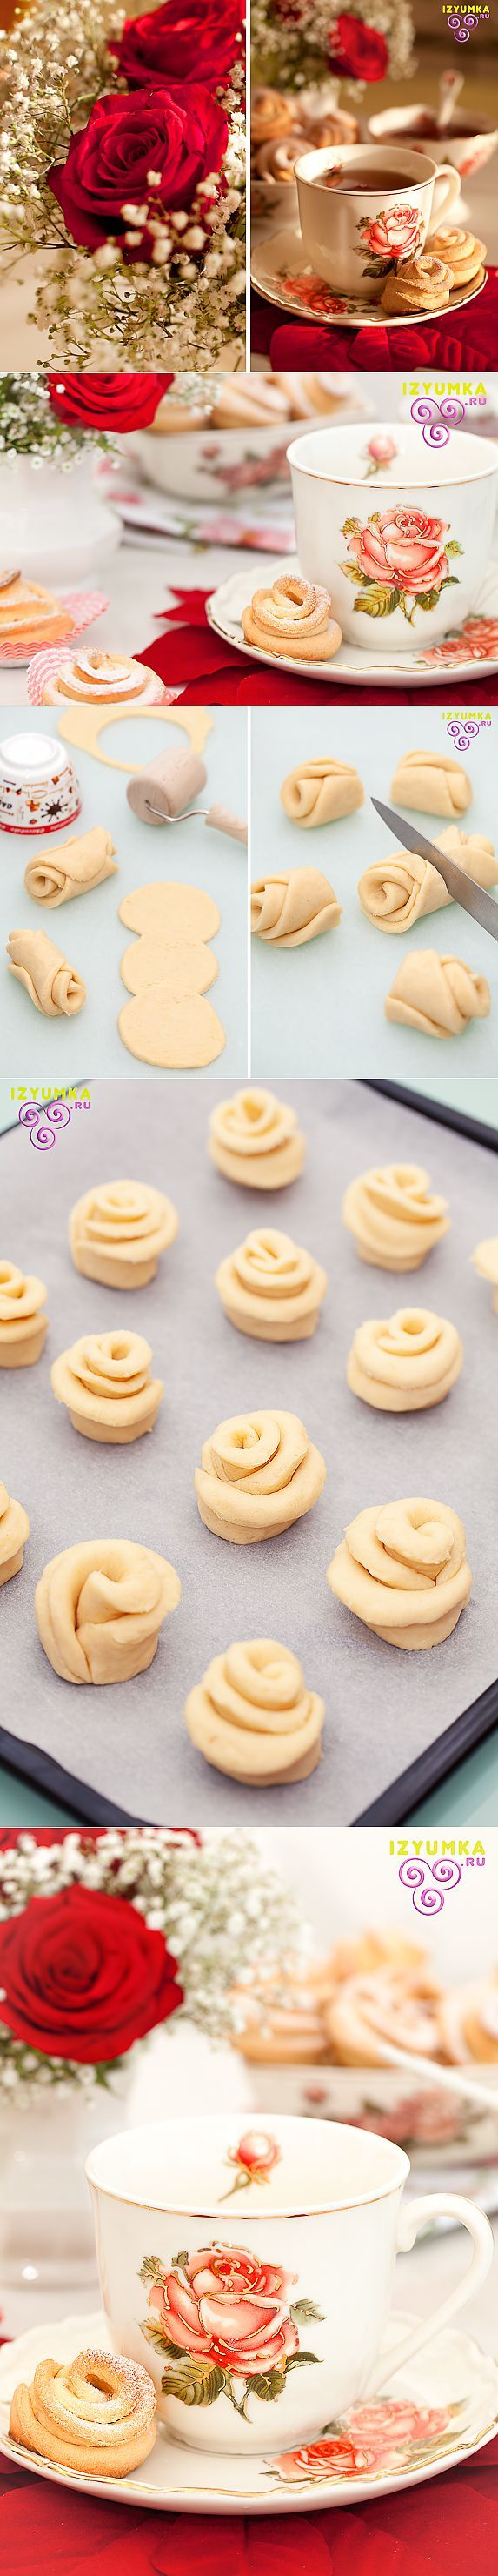 Творожные розы. | Выпечка | - no clue what this says. However, like the idea - simply roll into the rose shape and bake (you fill in the cookie dough). Nice idea for a tea party.